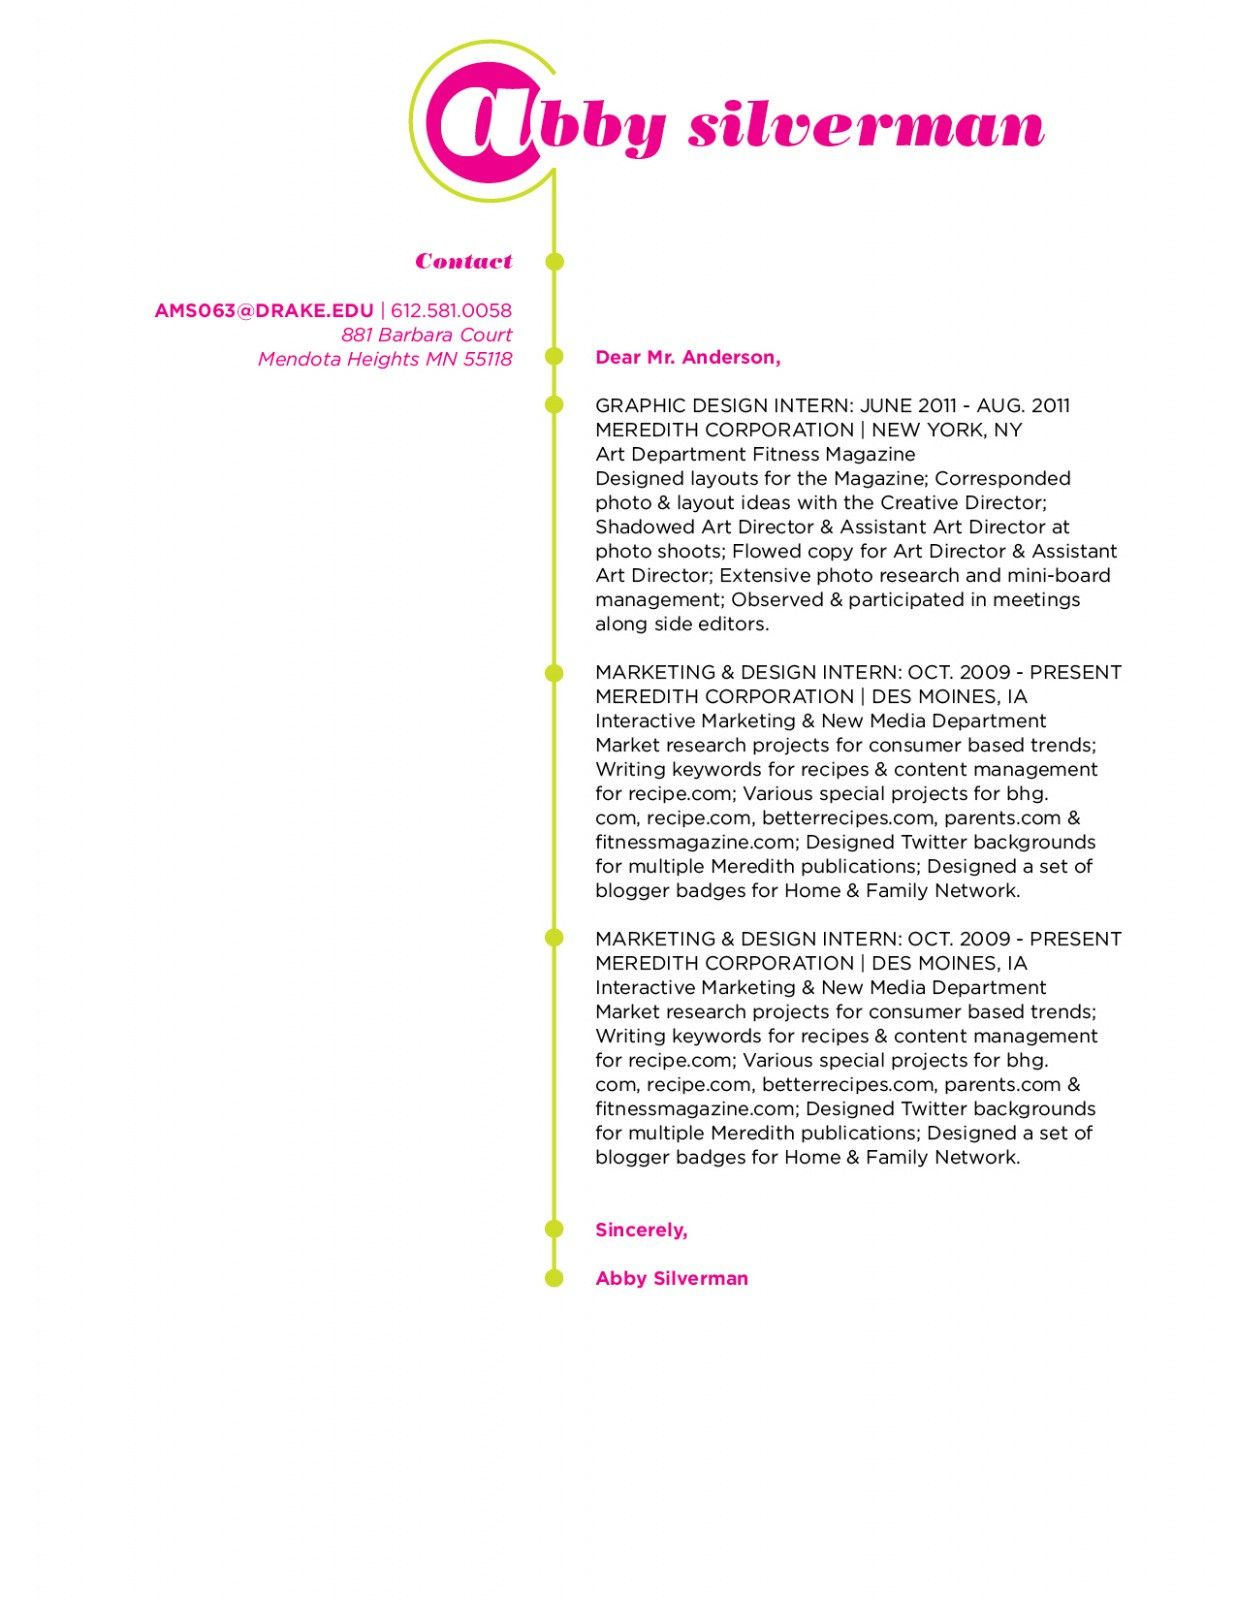 30+ Graphic Design Cover Letter | Cover Letter Designs | Pinterest ...